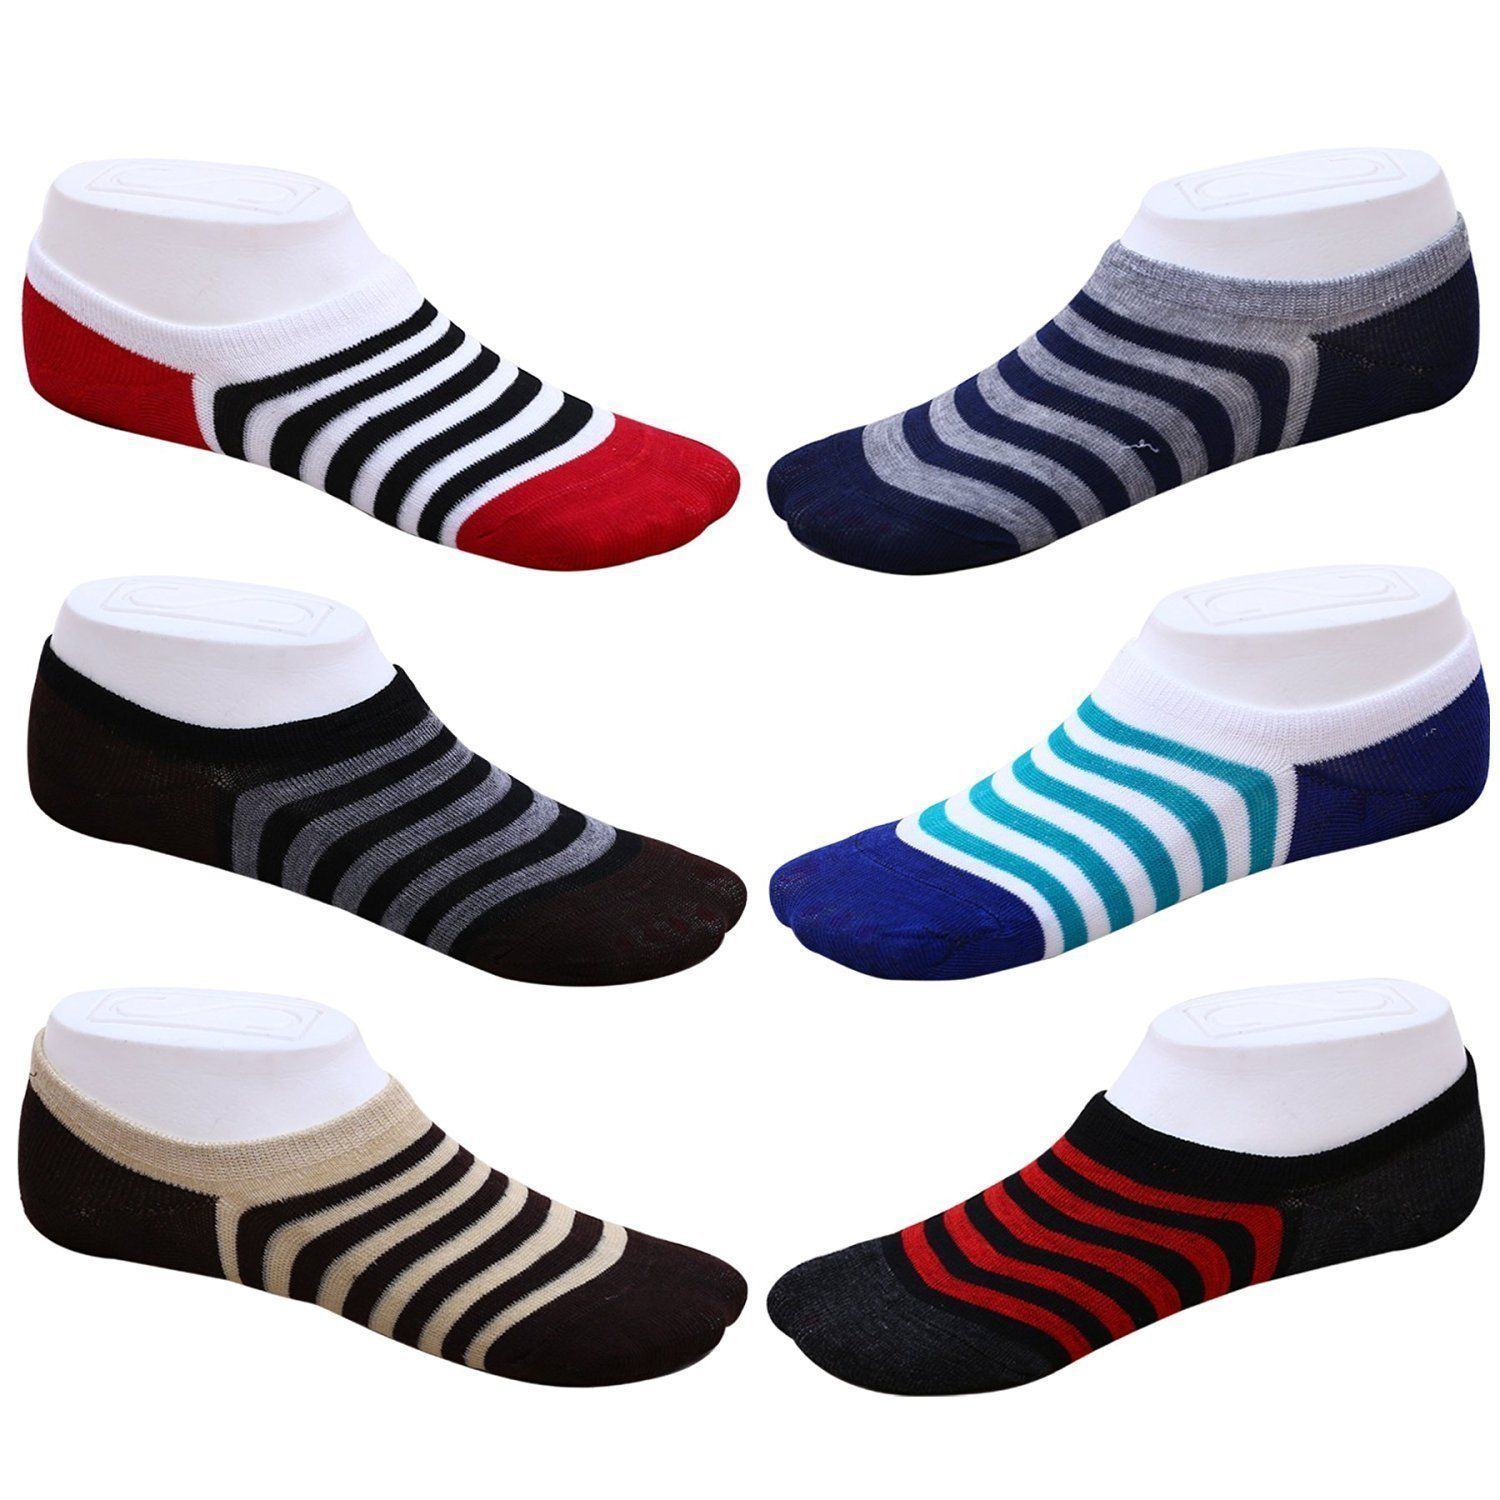 Dlt Men\'s Loafer Socks No Show Socks Striped Socks  Pack Of 6